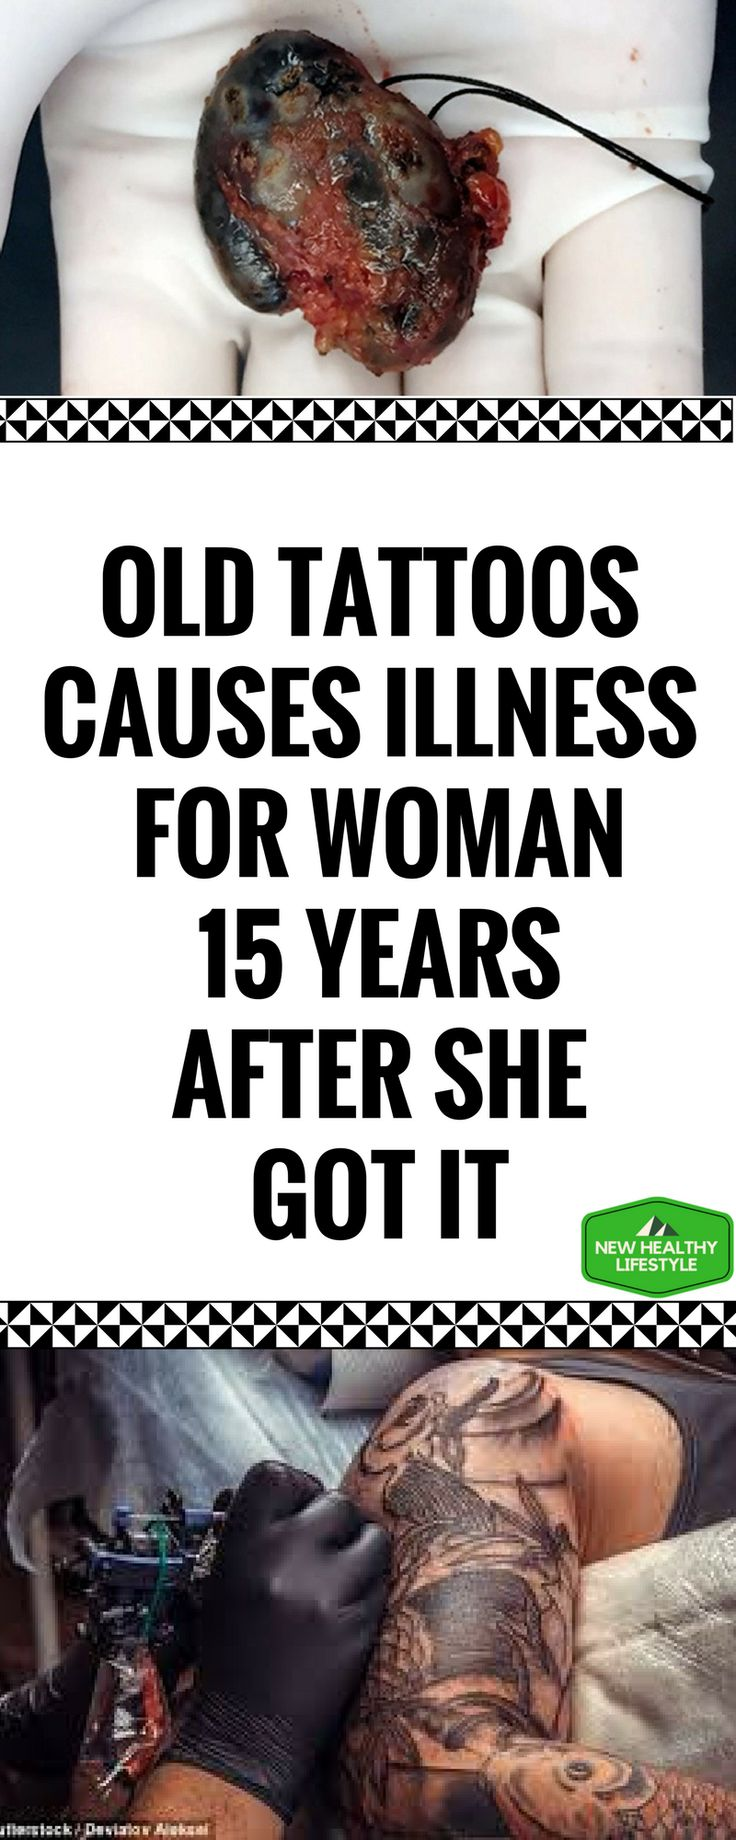 OLD TATTOOS CAUSES ILLNESS FOR WOMAN 15 YEARS AFTER SHE GOT IT    http://t.umblr.com/redirect?z=http://newhealthylifestyle.info/2017/10/20/old-tattoos-causes-illness-for-woman-15-years-after-she-got-it/&t=OWJlNTMzNDBhMTEyOTdkOWEyMGE3ZTc3NWIyZWZkMTdiMTUwNTBhYixiQXpRdlpEWQ==&b=t:Poru5MZzsR4-2bSsunHSig&p=https://majatodorovska12345.tumblr.com/post/166588218707/old-tattoos-causes-illness-for-woman-15-years&m=1